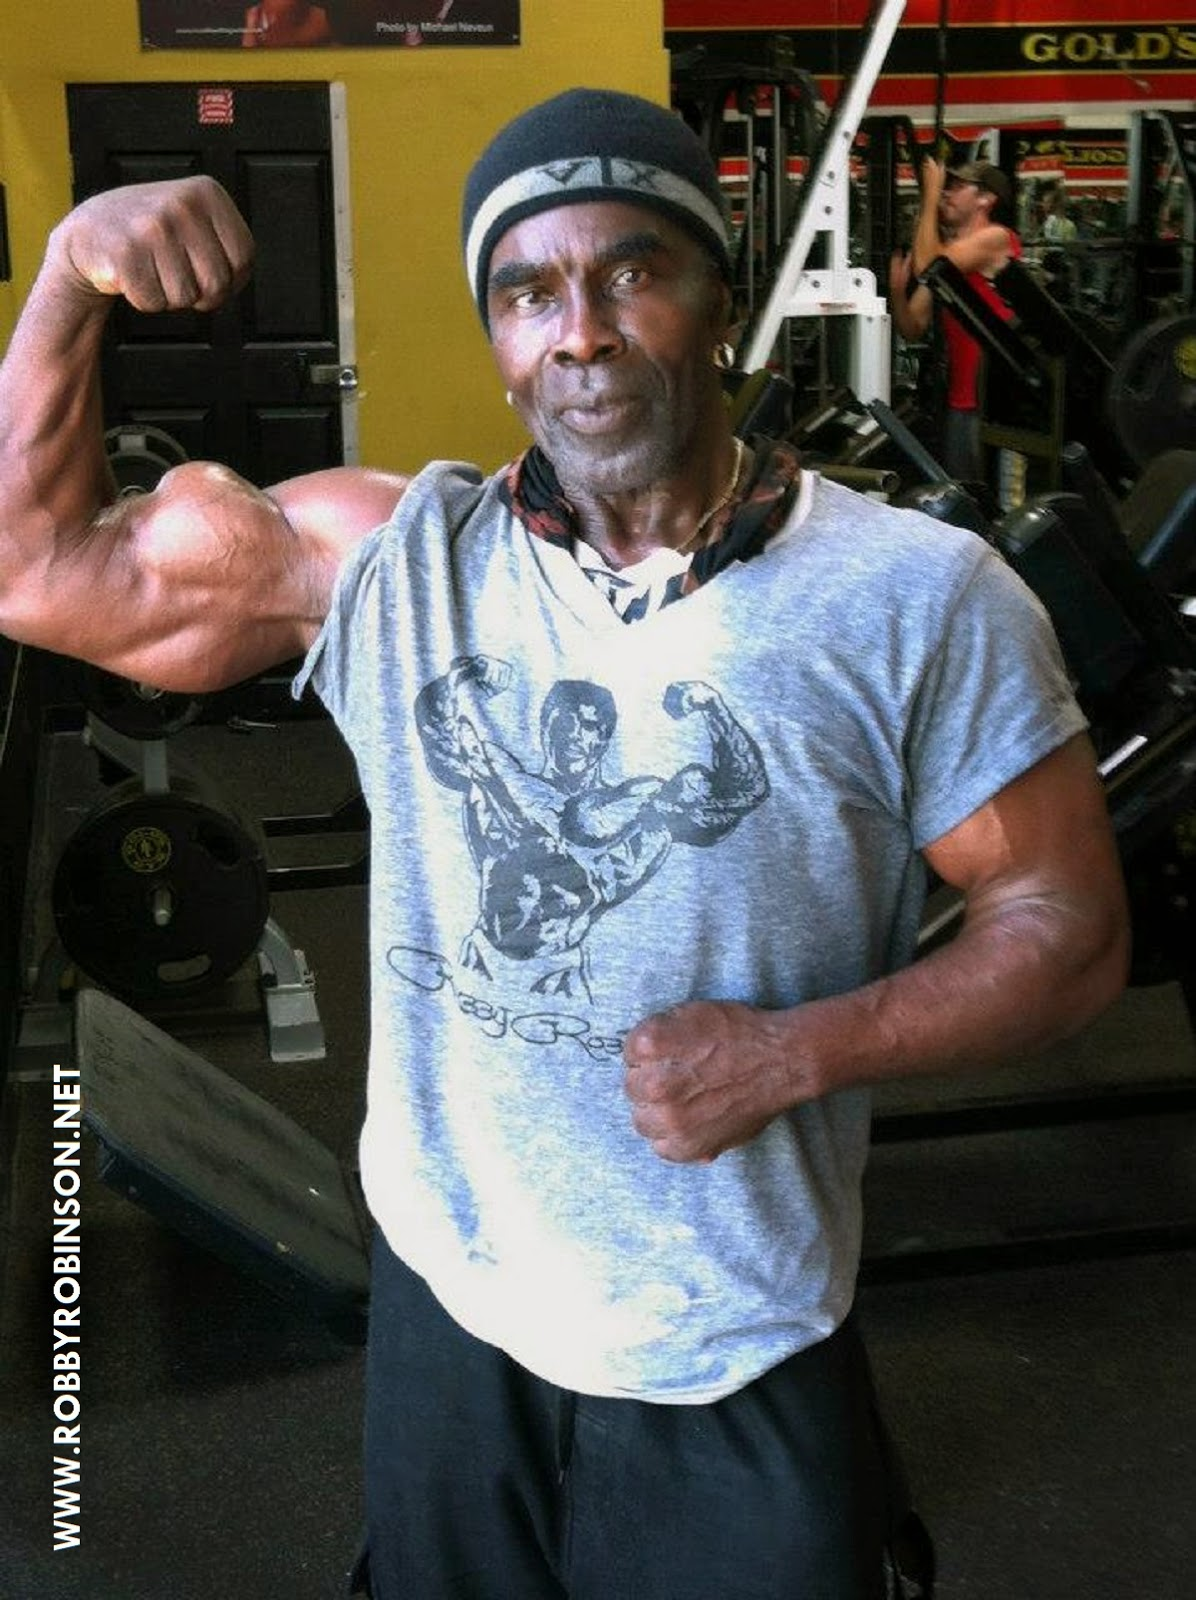 Robby's famous Bicep Peak - Photo by Gary Casaccio during RR' Master Class at Gold's Gym Venice ● www.robbyrobinson.net/motivation.php ●